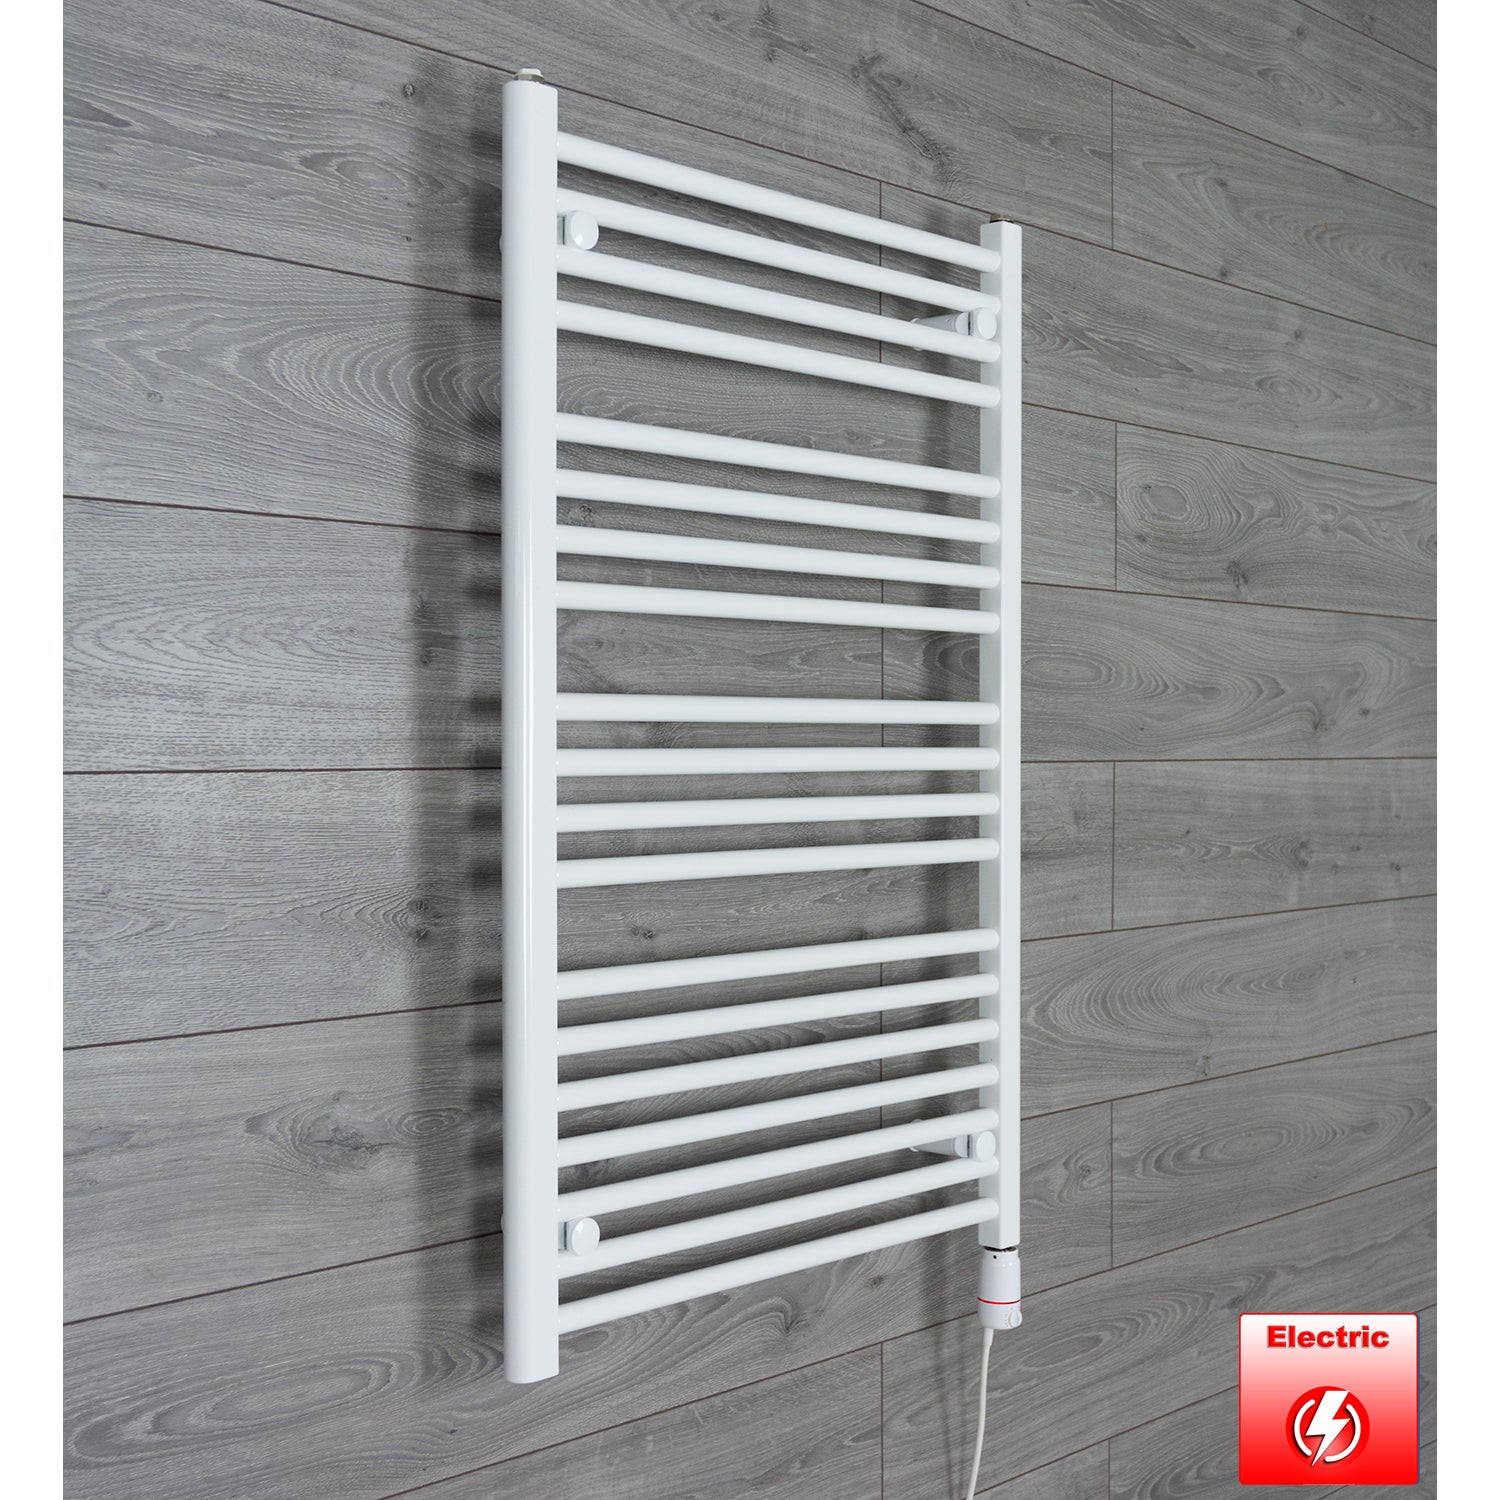 650mm Wide 1000mm High Flat WHITE Pre-Filled Electric Heated Towel Rail Radiator HTR,GT Thermostatic